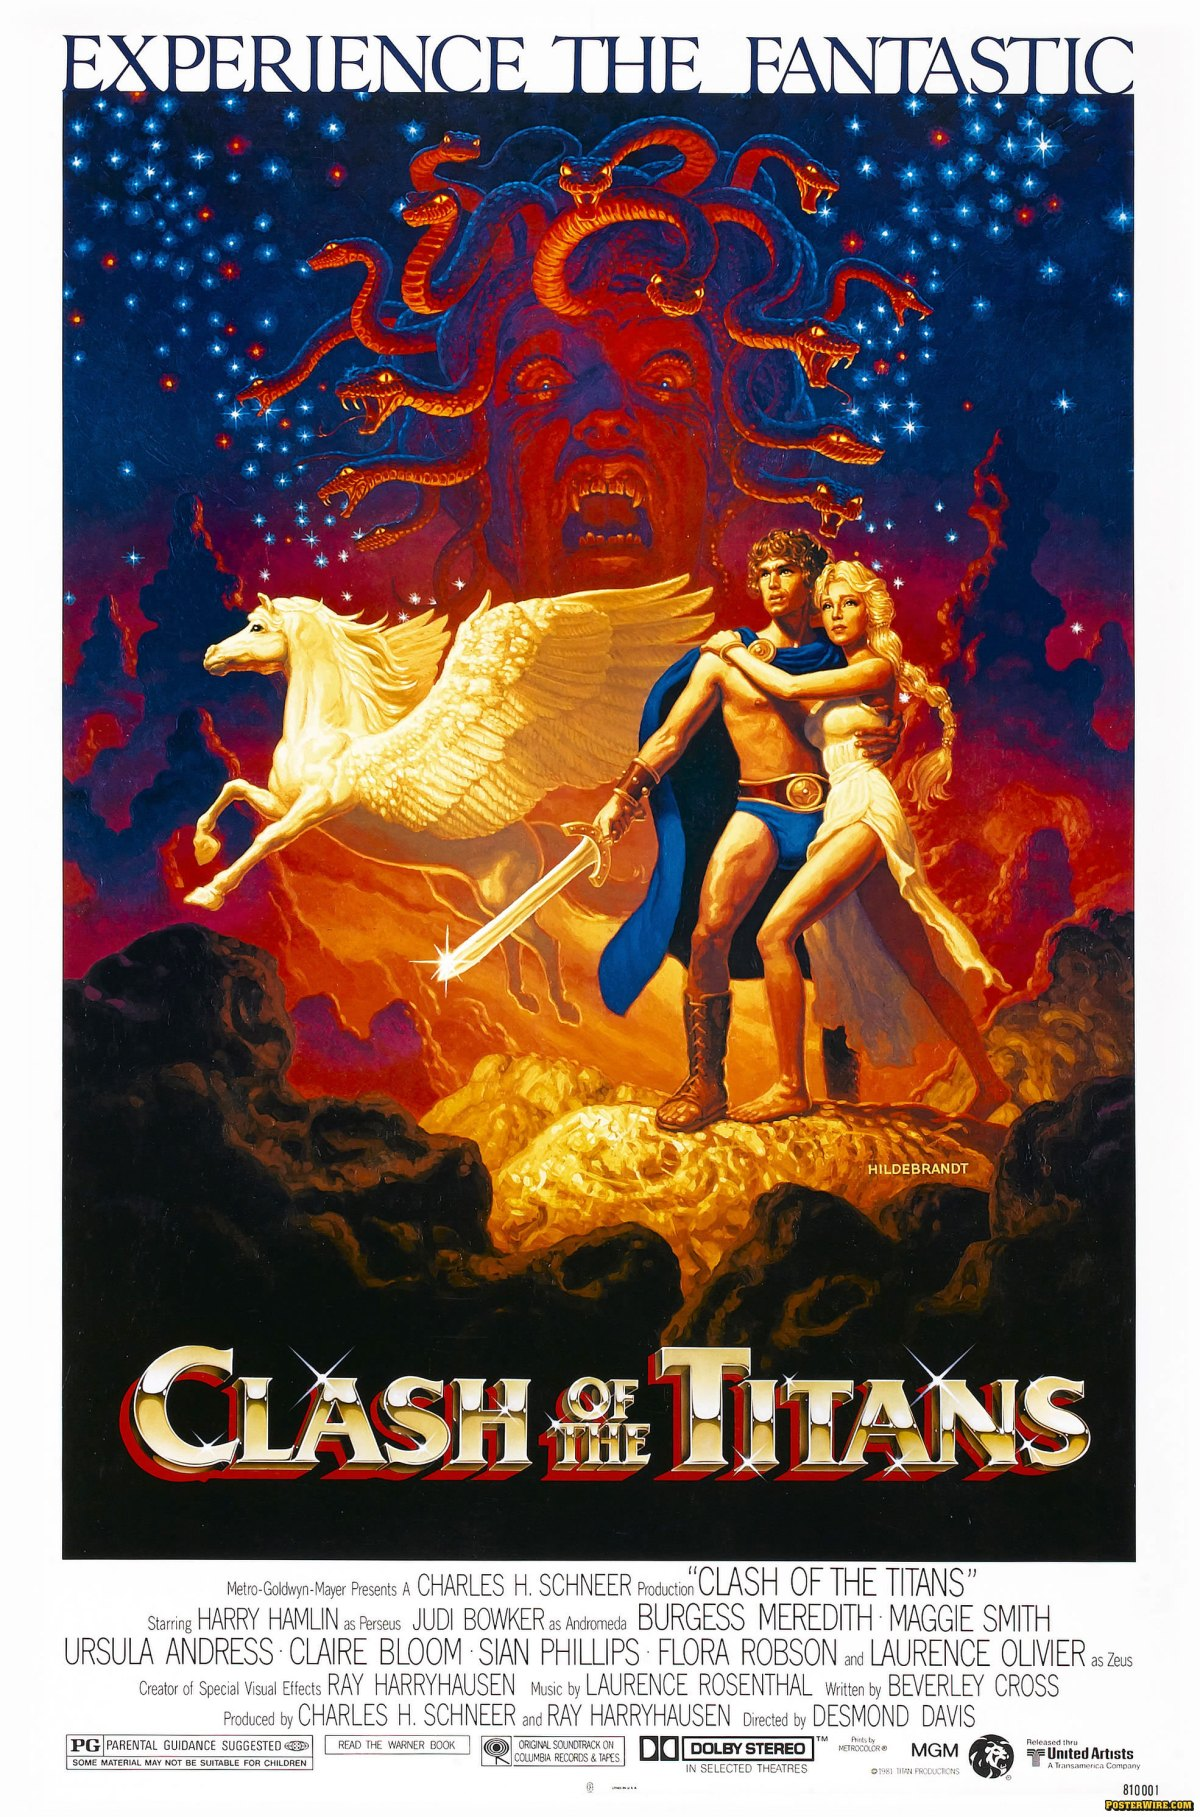 http://derricklferguson.files.wordpress.com/2011/11/clash_of_the_titans.jpg?w=1200